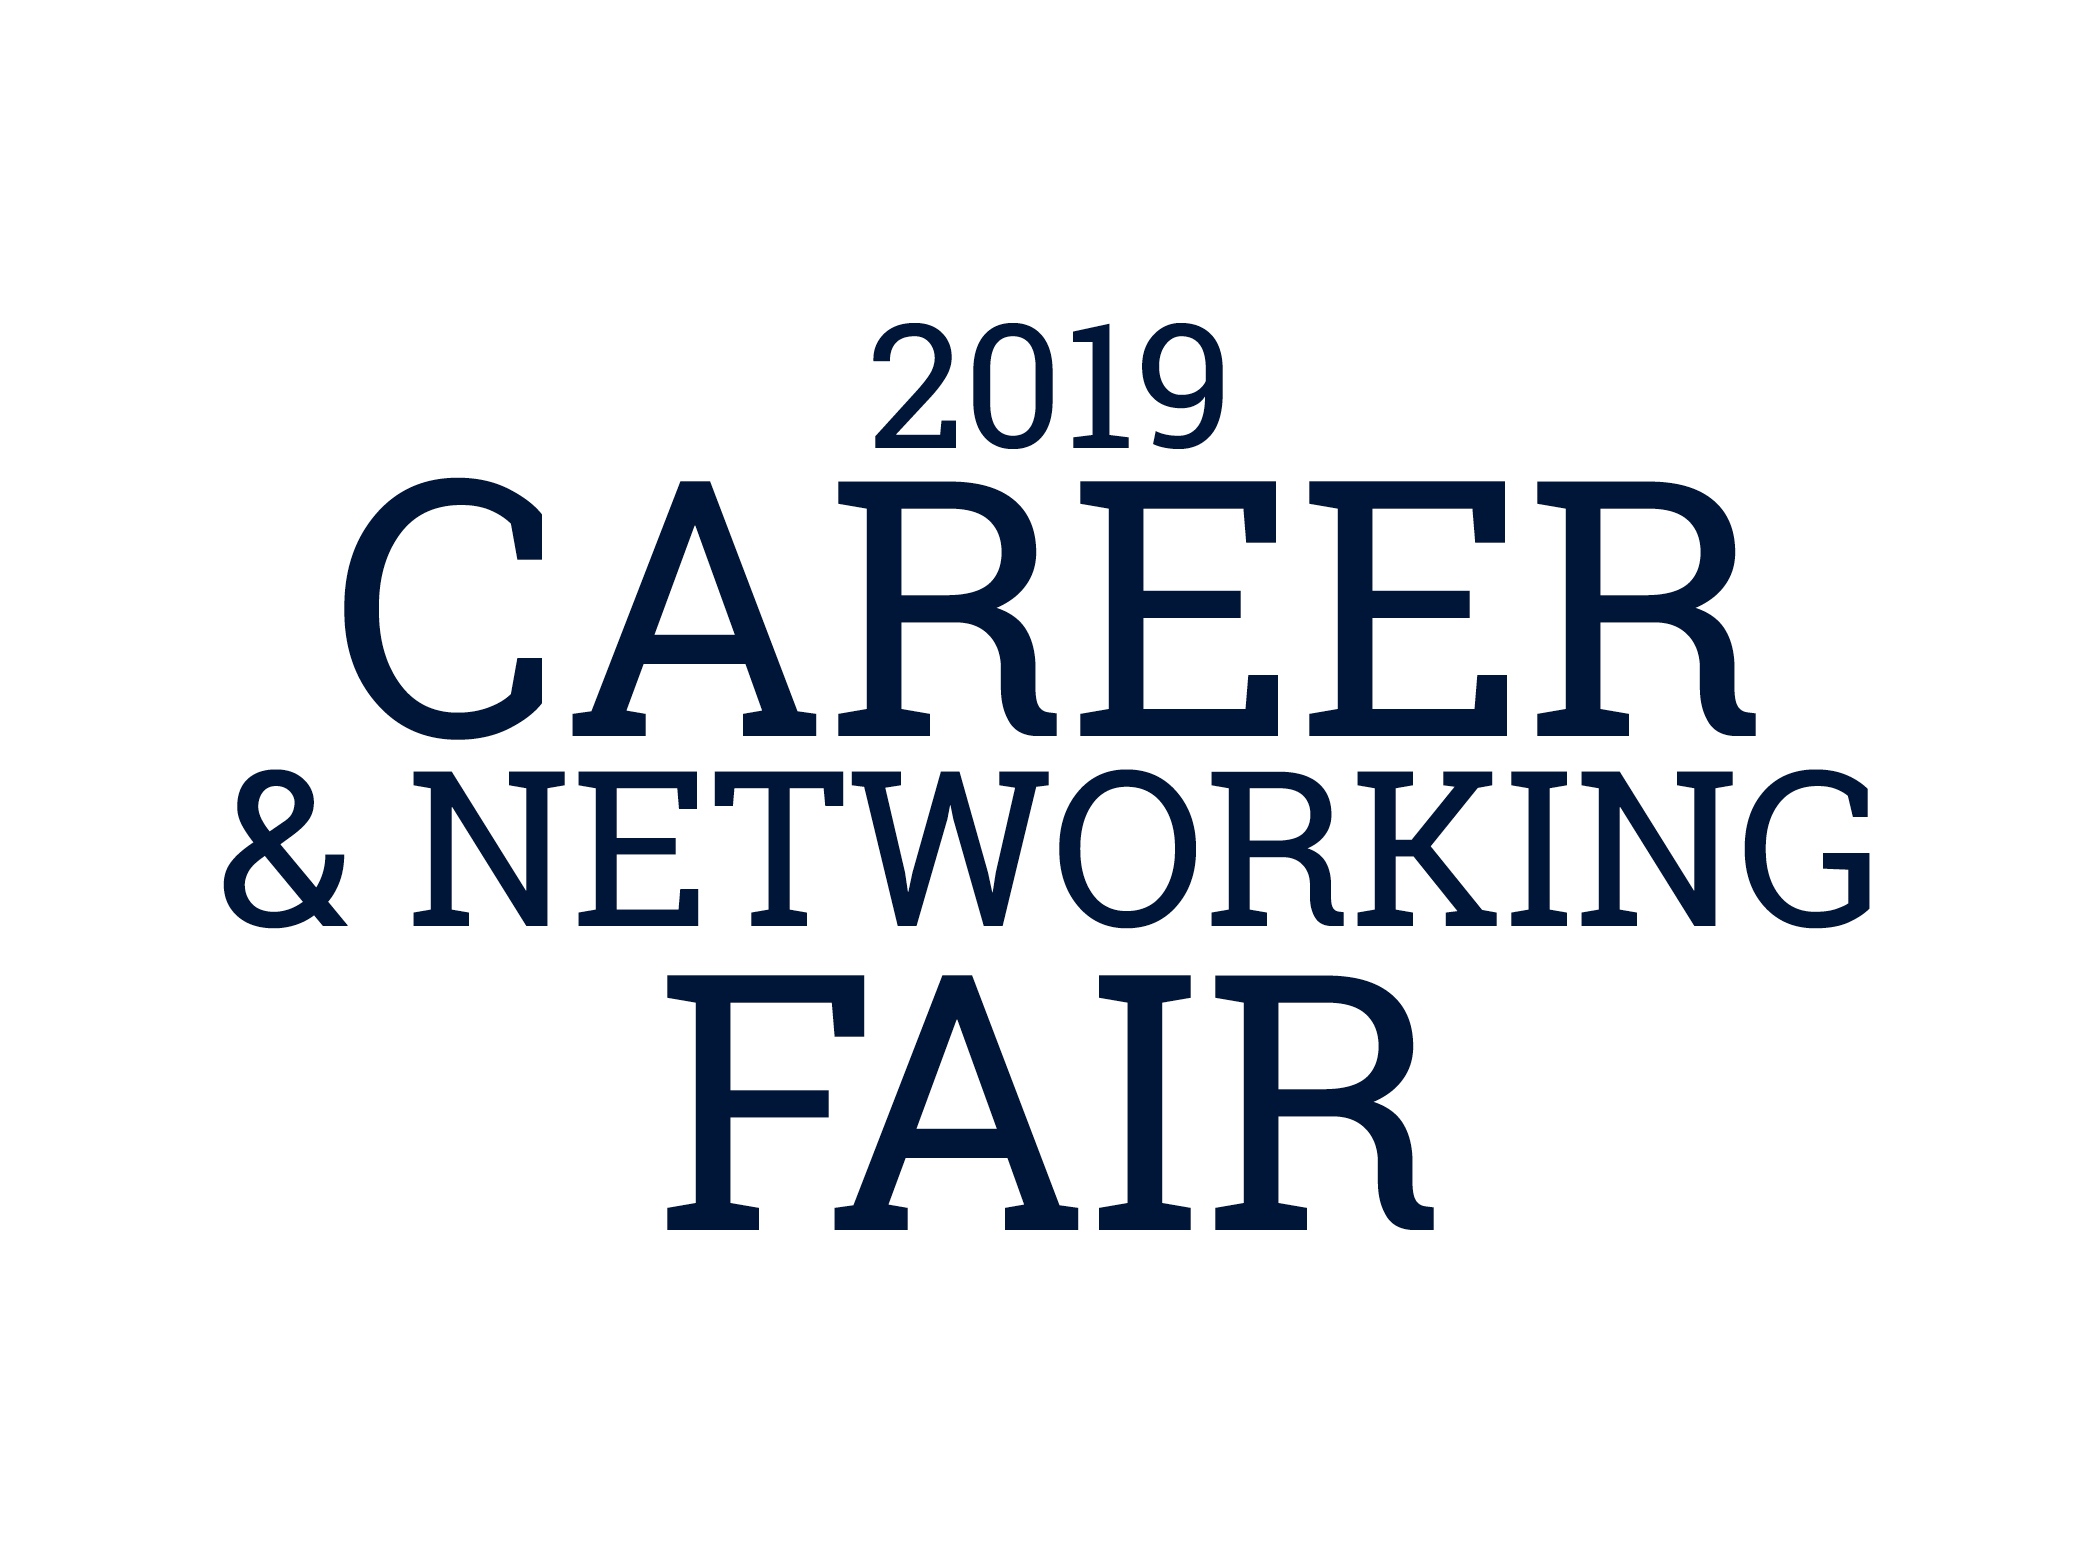 2019 career fair